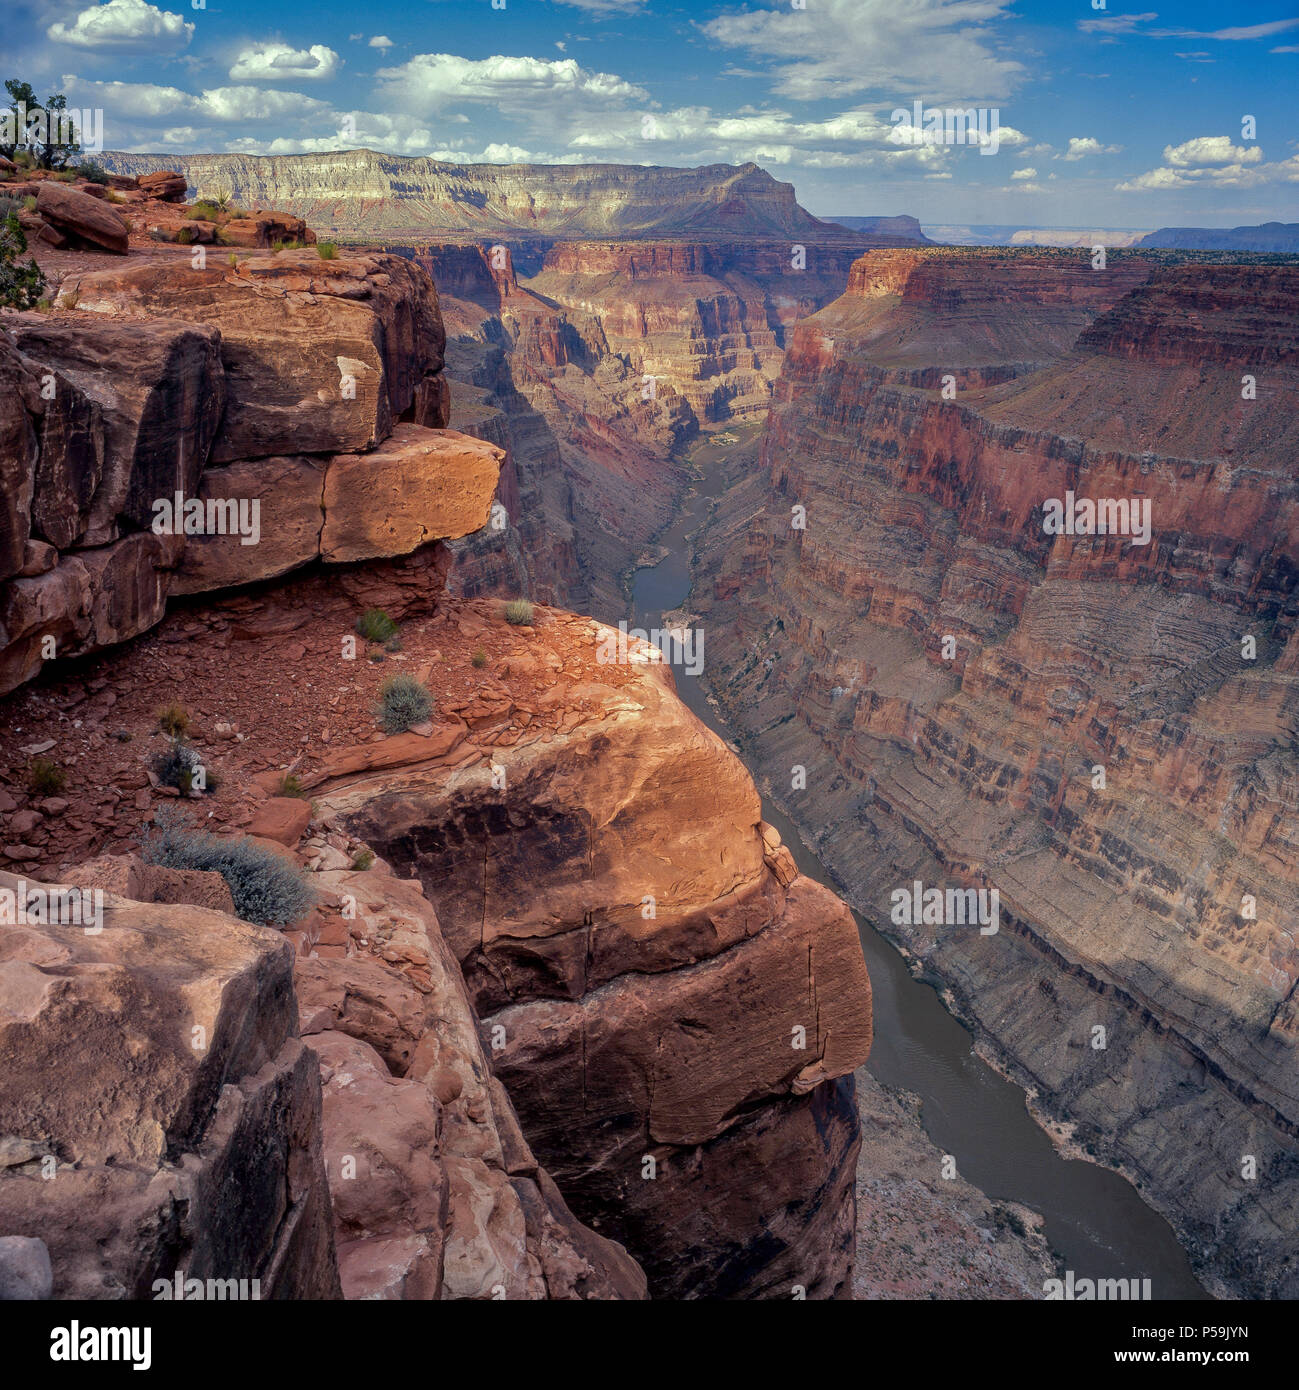 Colorado River, Toroweap Overlook, Grand Canyon National Park, Arizona - Stock Image